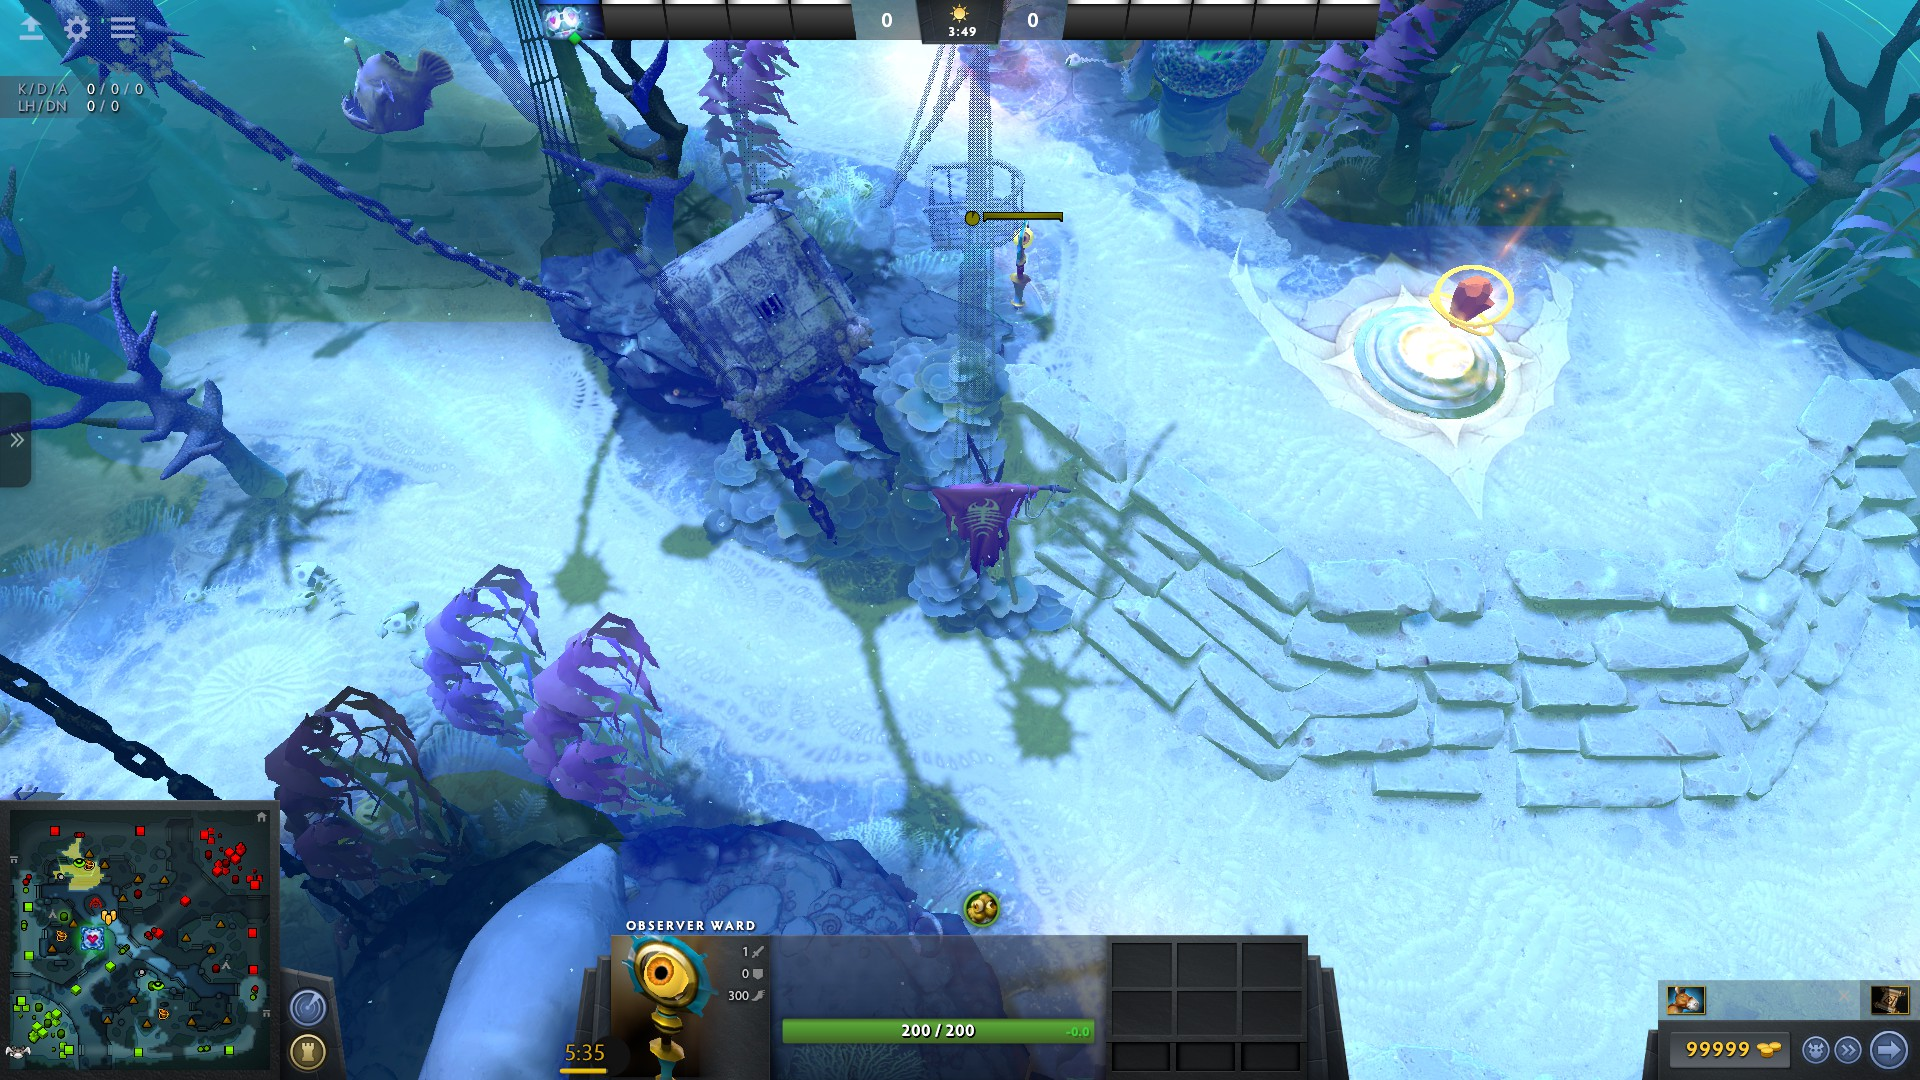 This offlane ward gives you vision of Dire's pull camps, as well as letting you keep an eye on the top Bounty rune and scout out incoming ganks.